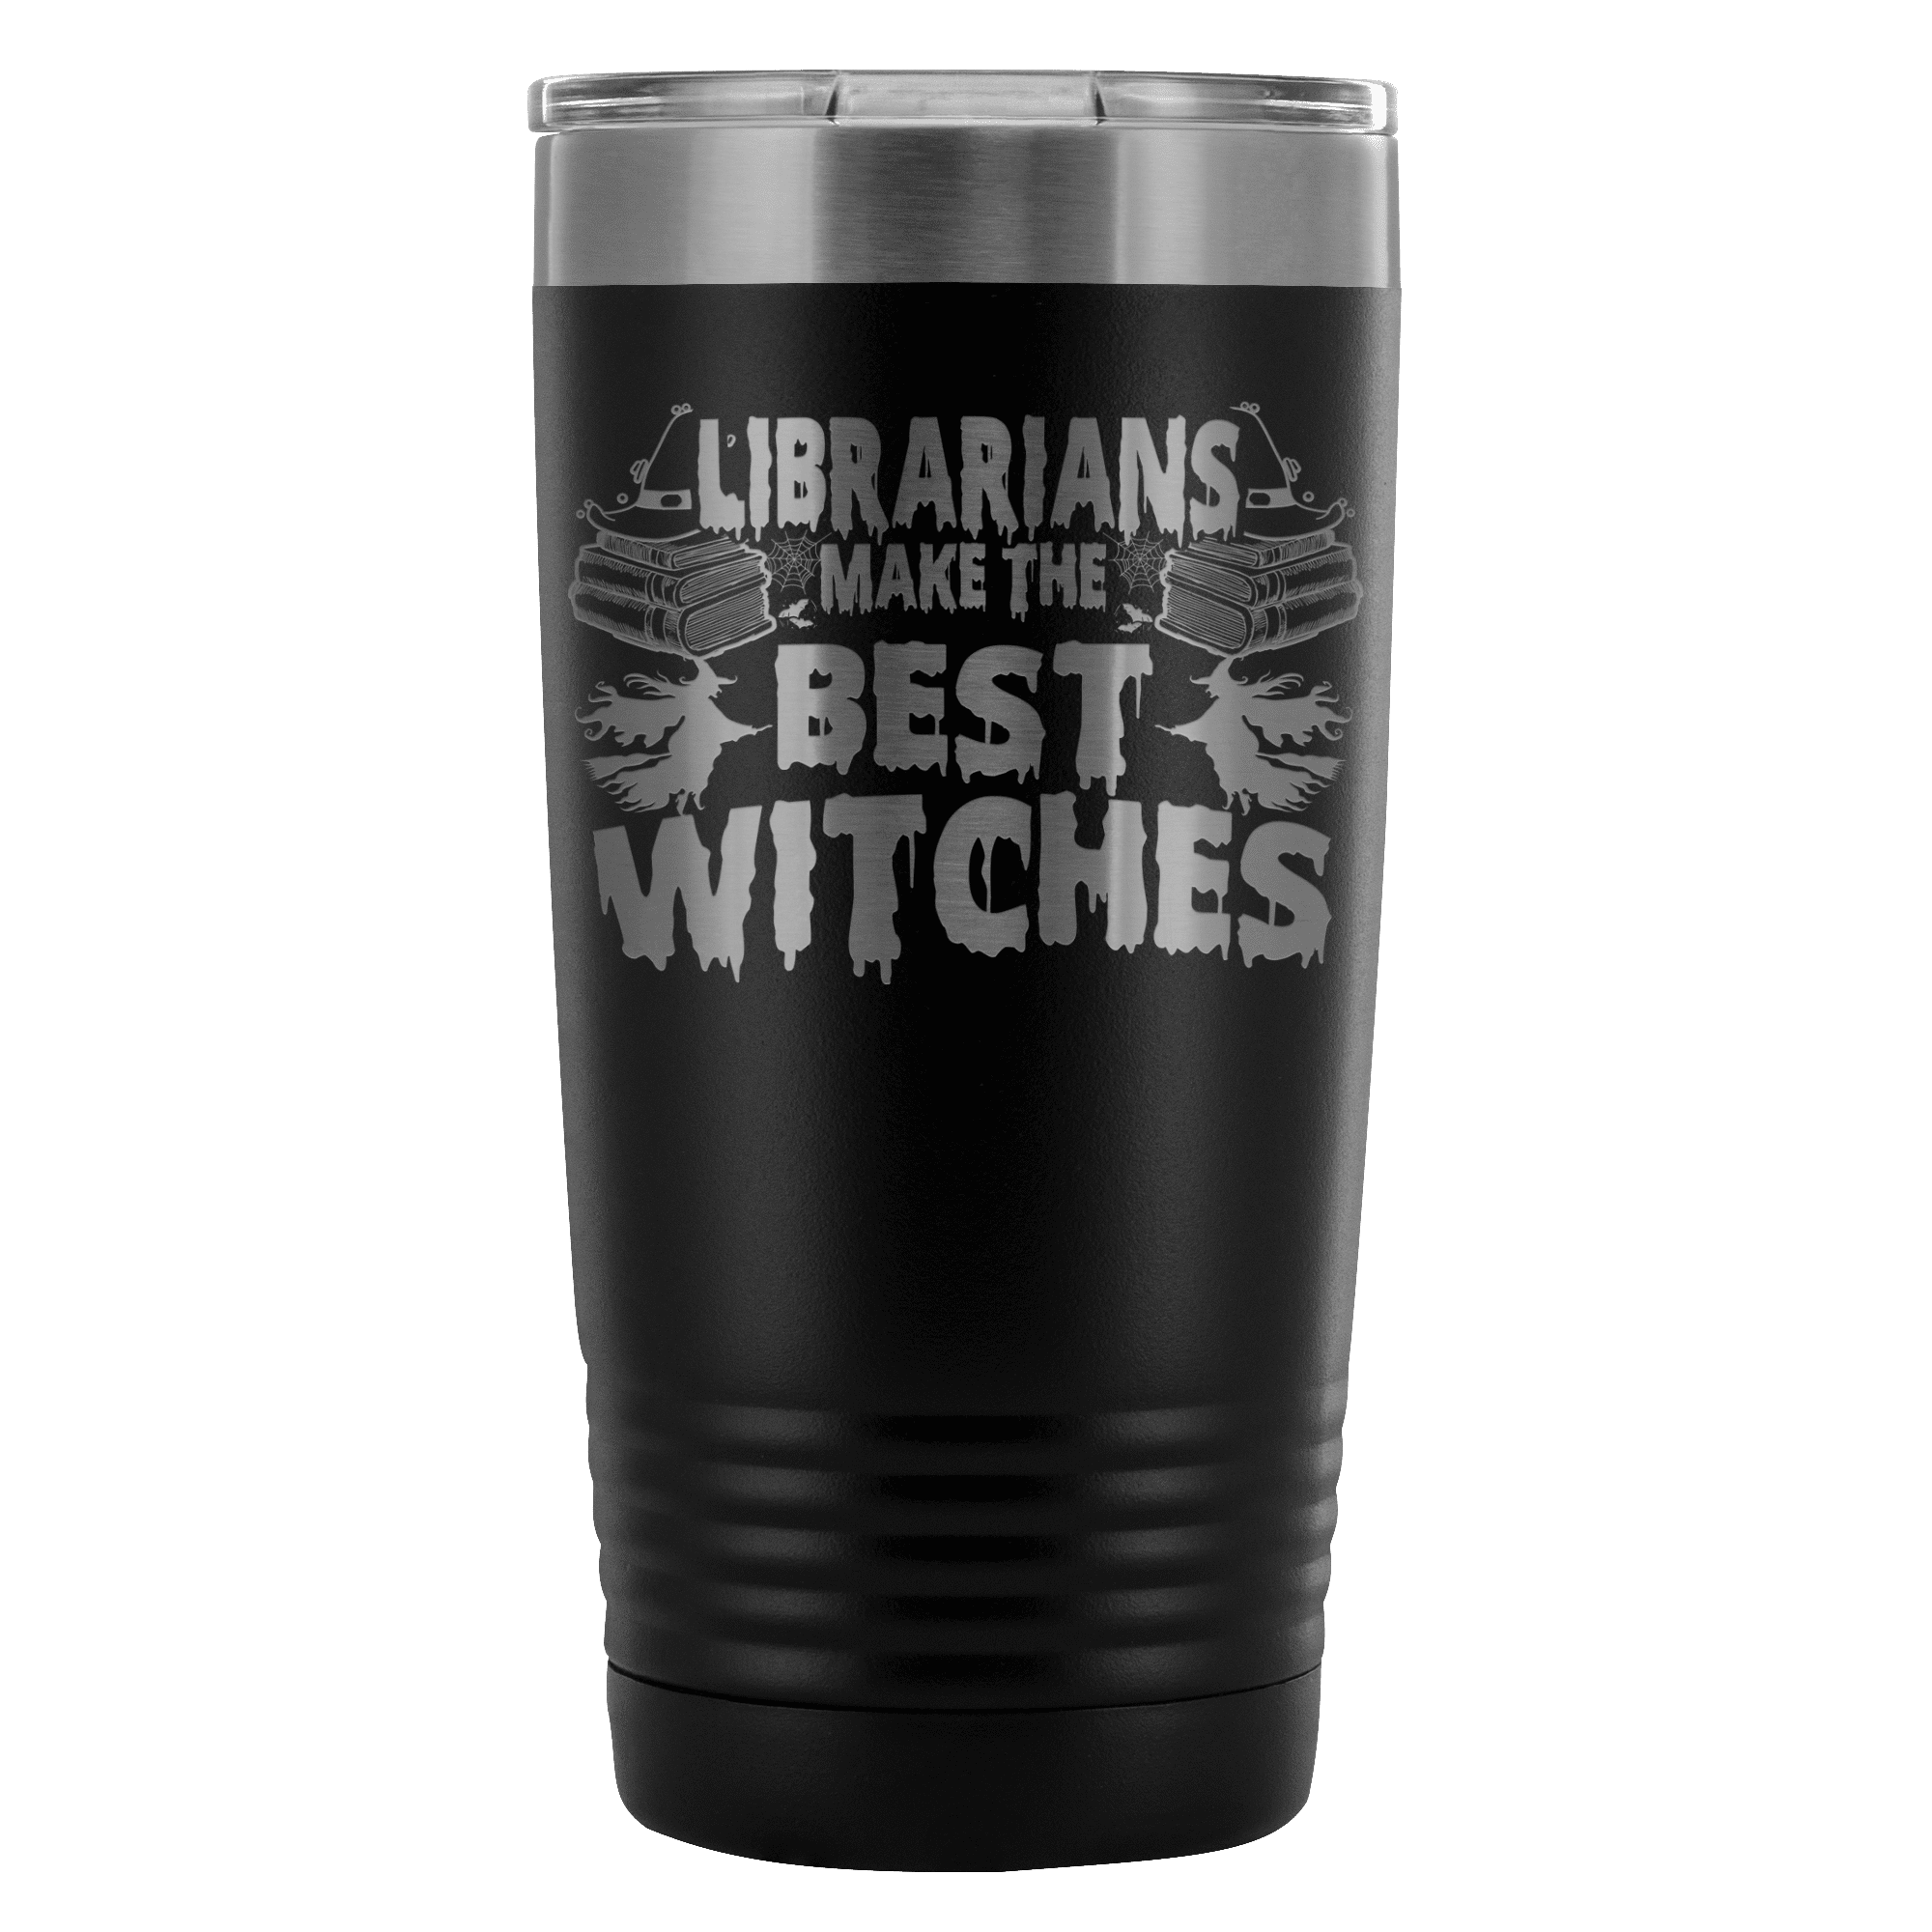 Librarians Make The Best Witches 20oz Tumbler - Awesome Librarians